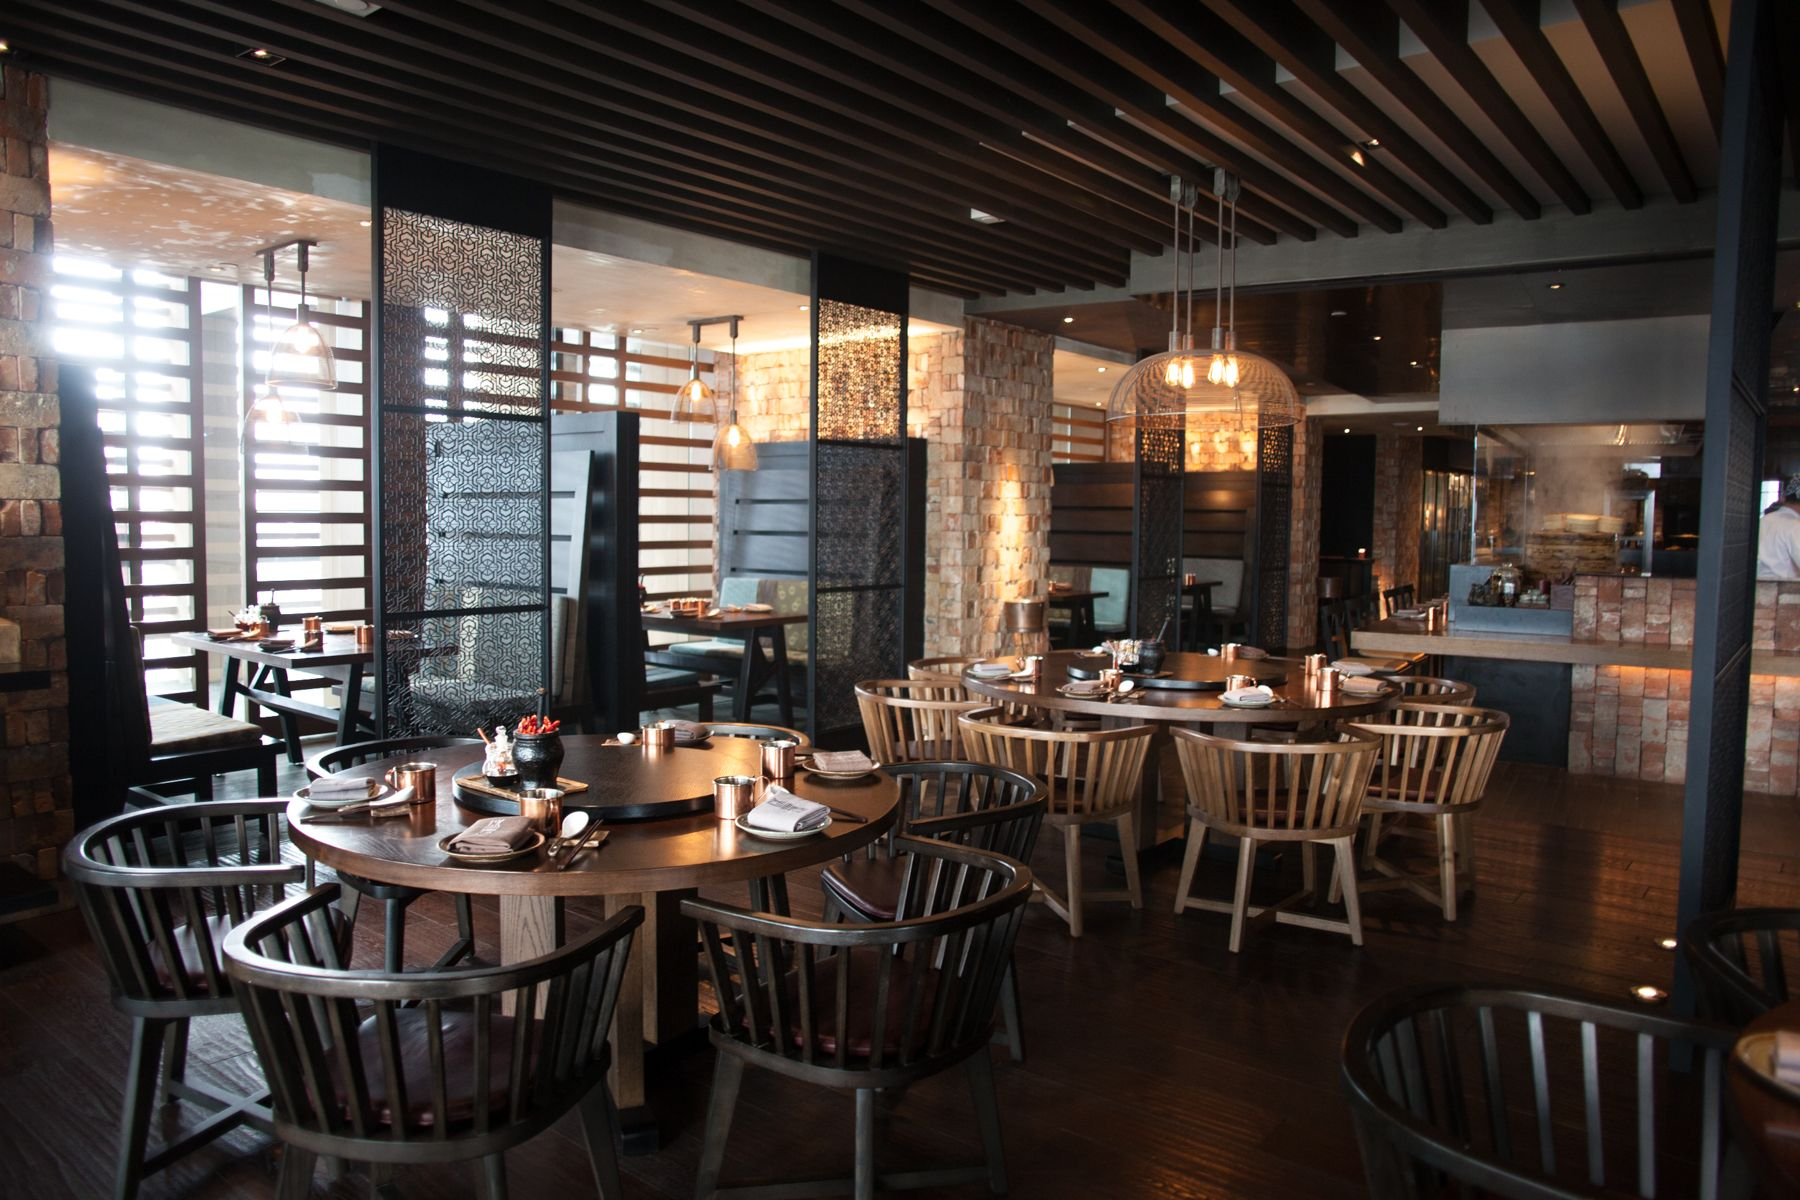 Best Country Kitchen Rosewood Beijing Google Search Cafe 400 x 300